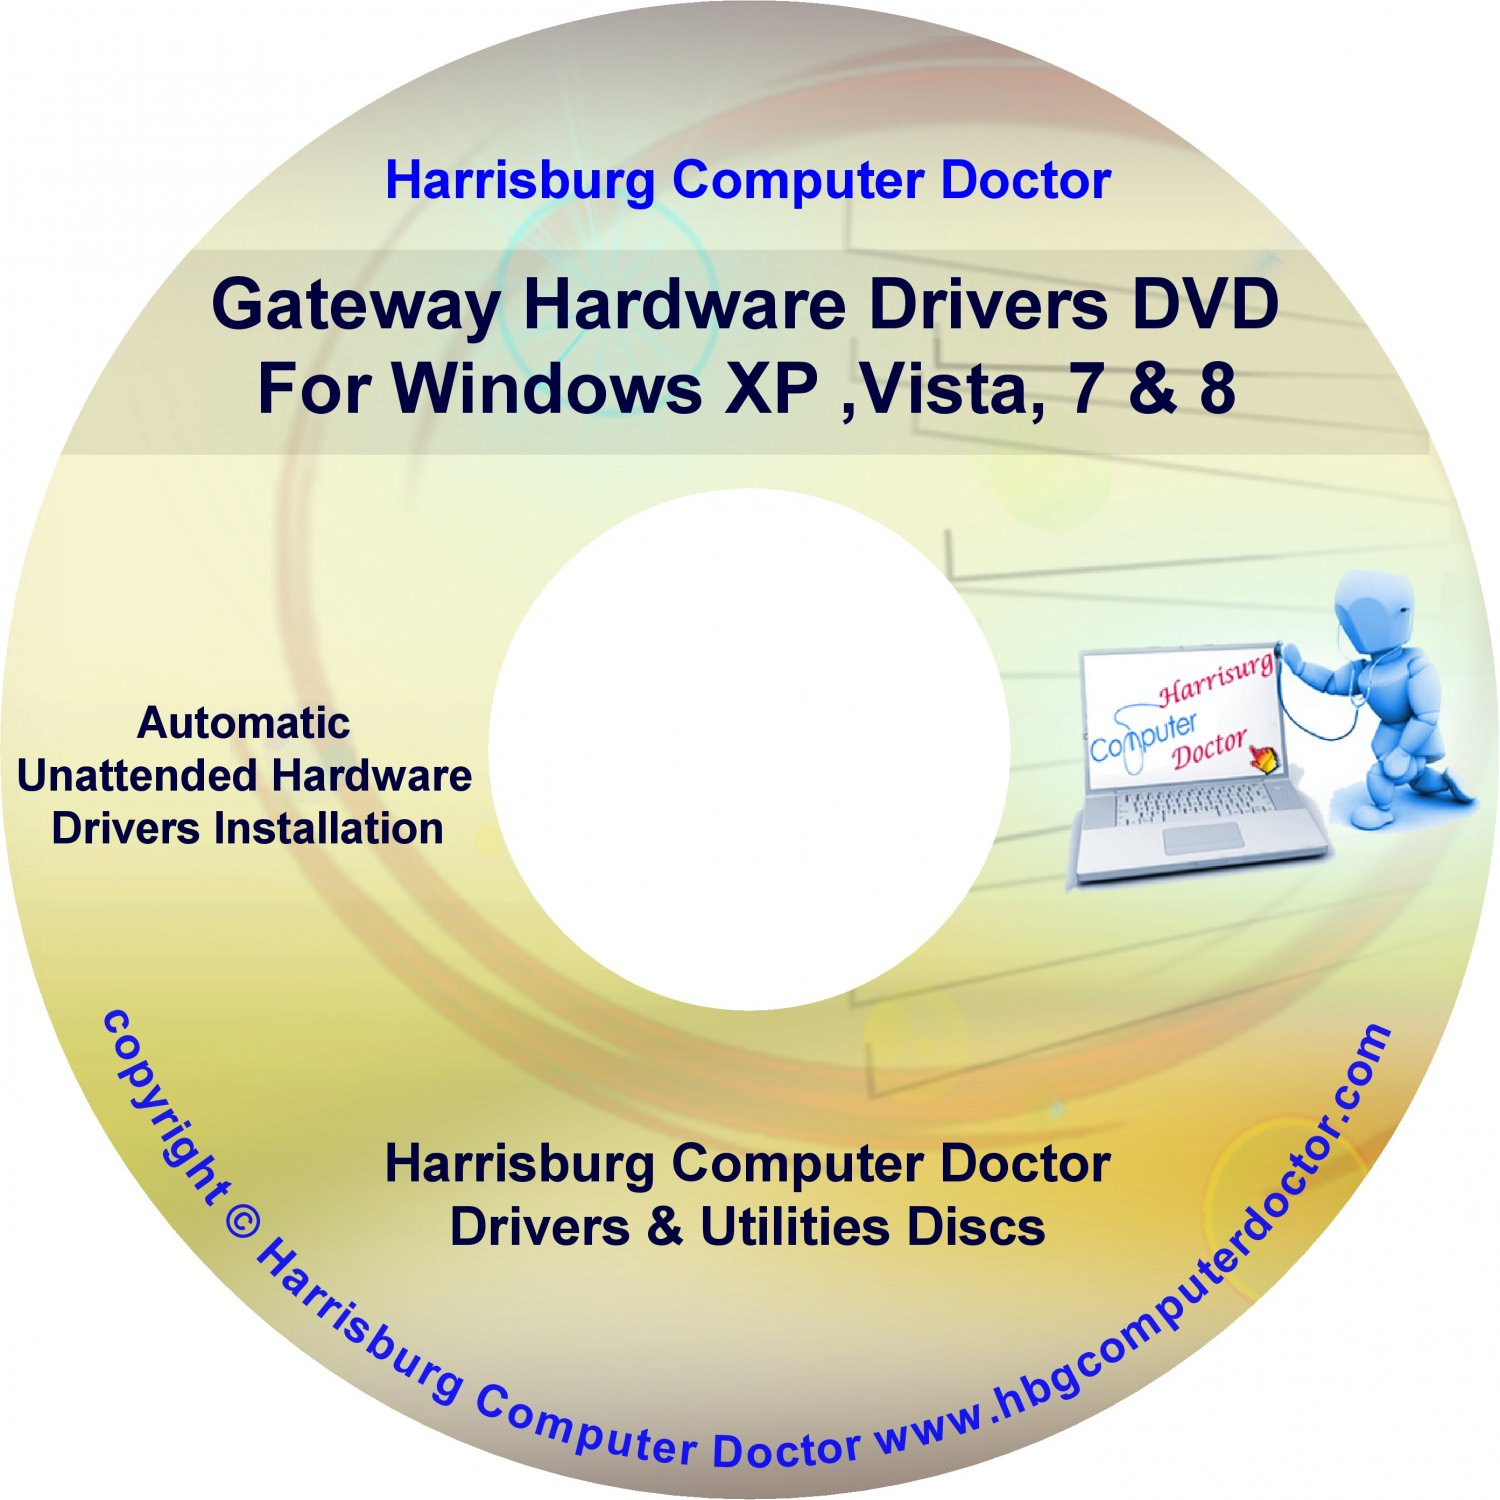 Gateway T-6319c Drivers DVD For Windows, XP, Vista, 7 & 8